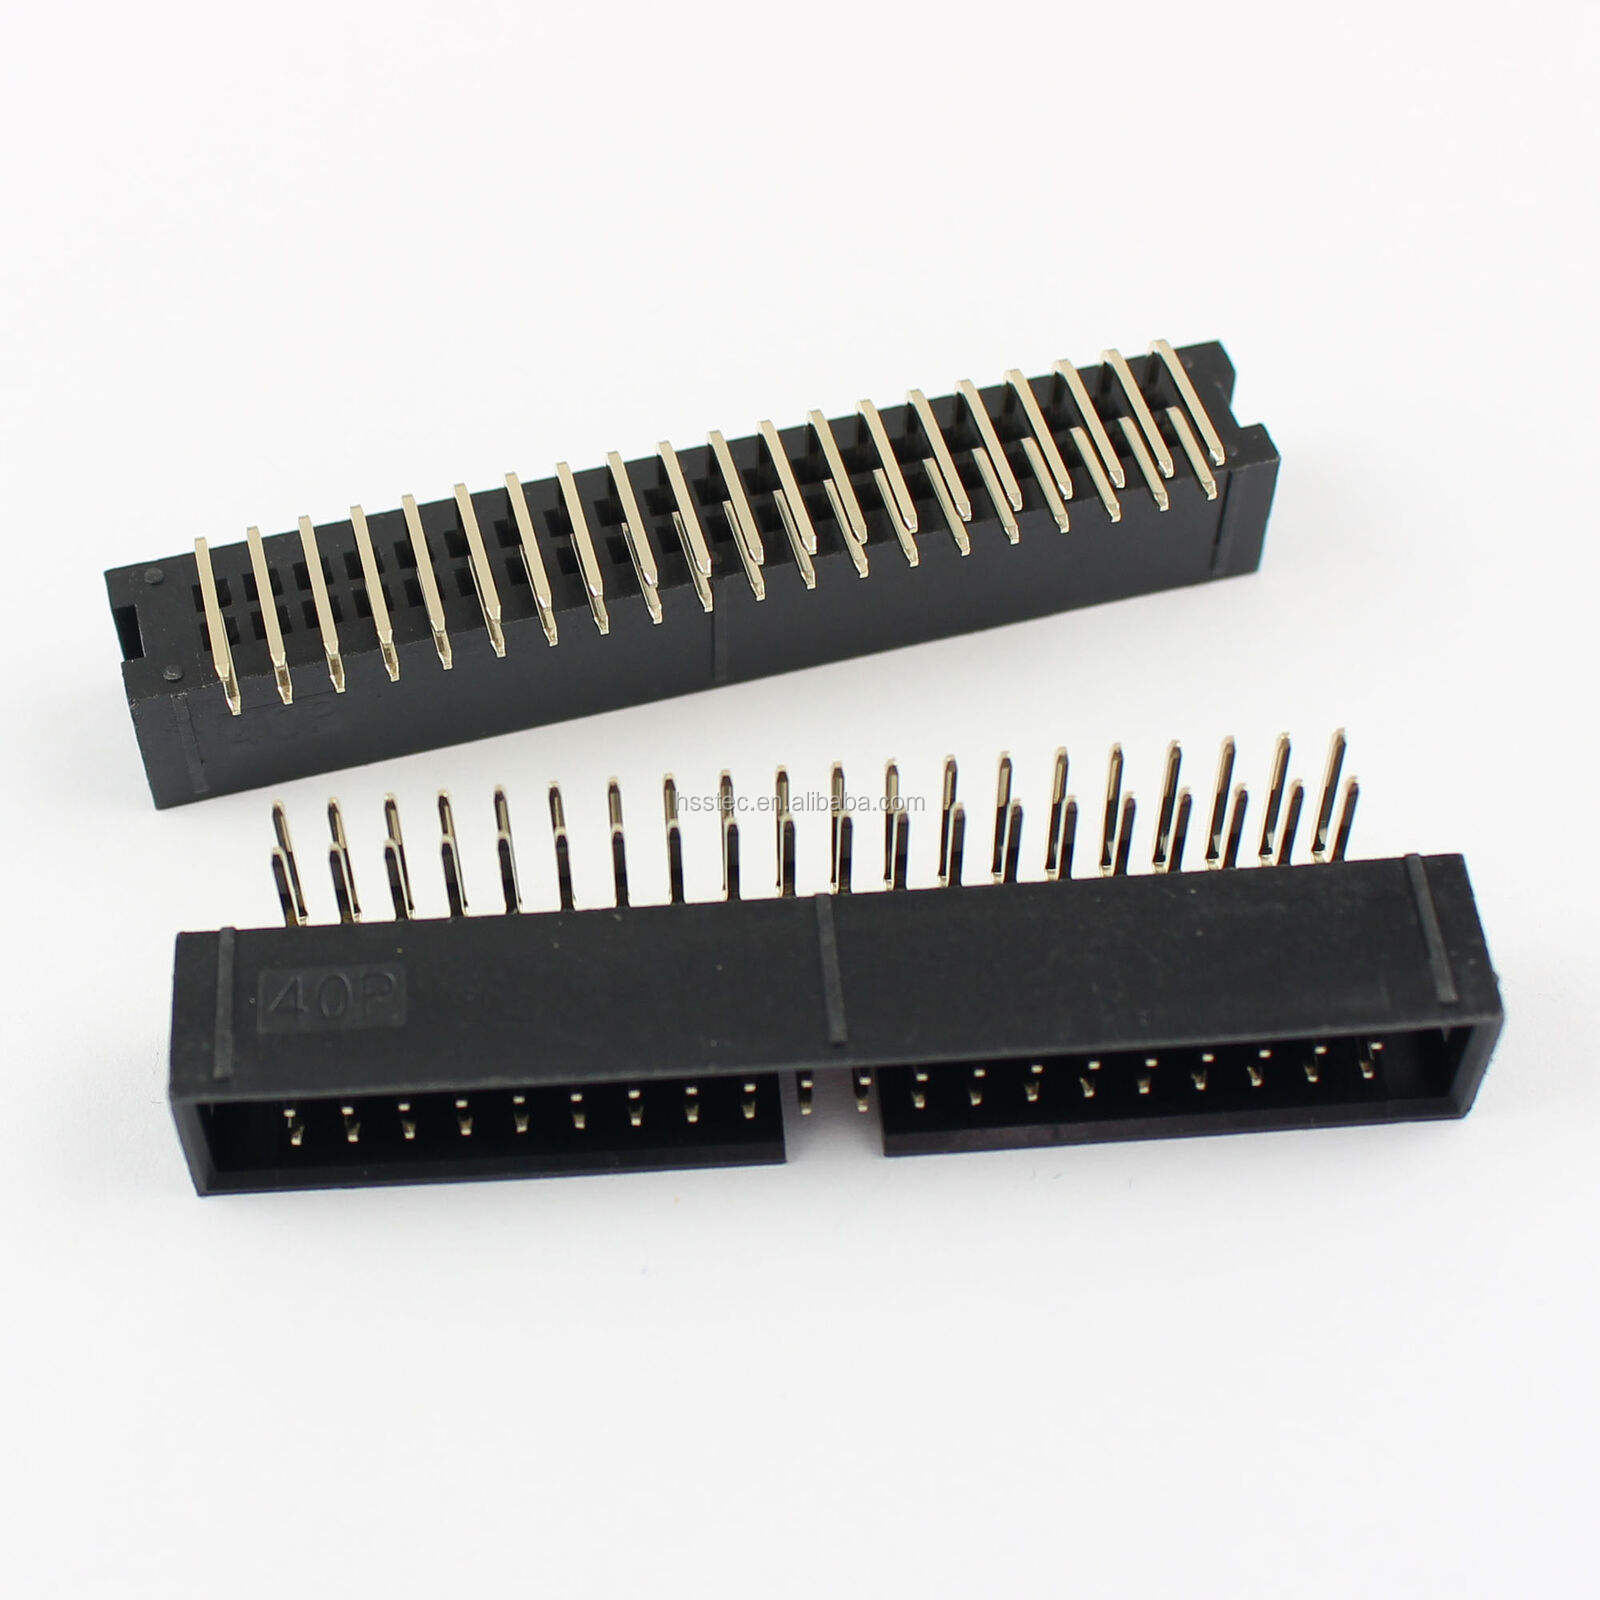 2.54mm 2x20 Pin 40 Pin Right Angle Male Shrouded IDC Box Header Connector